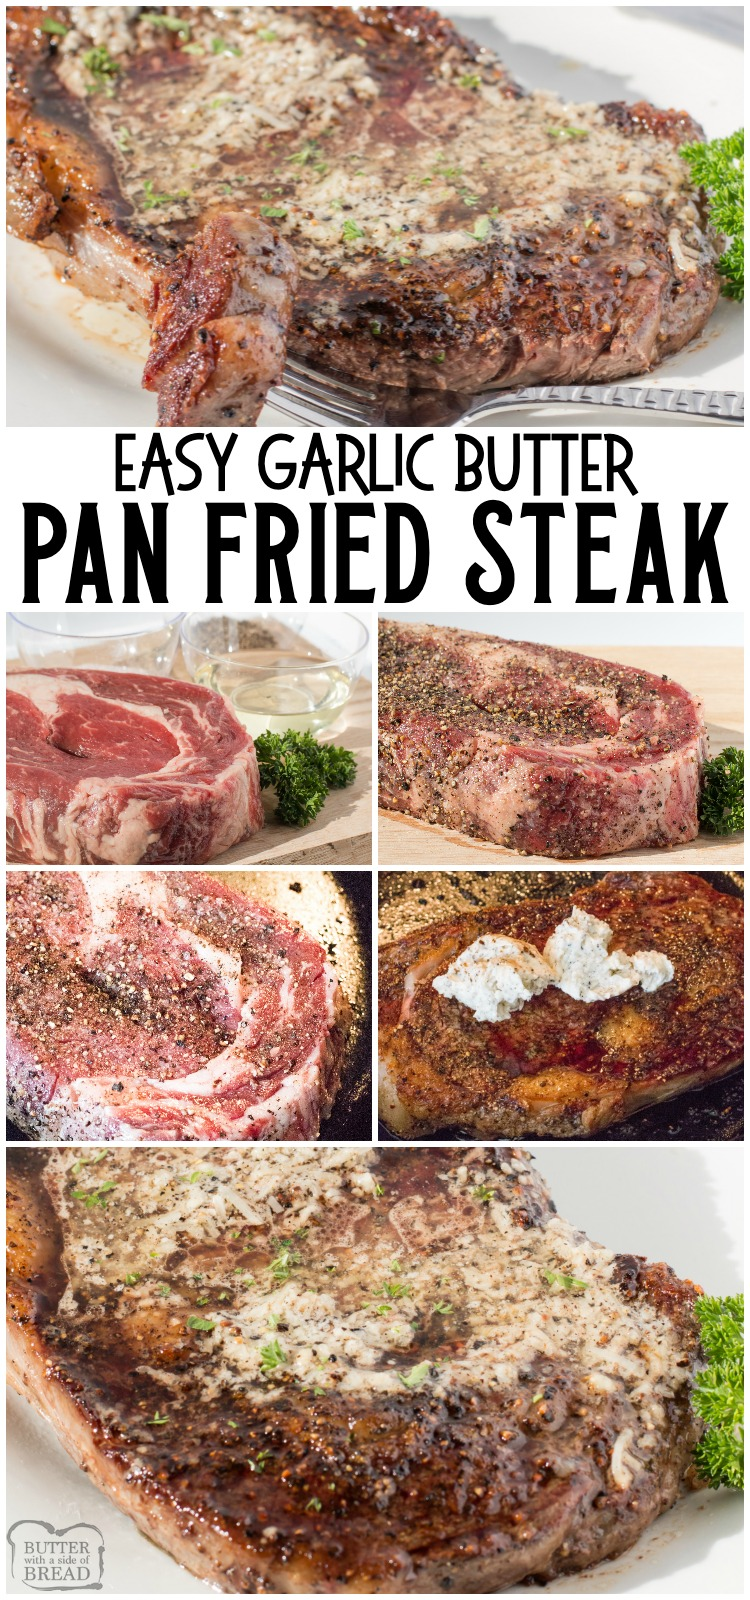 Simple recipe for Pan-Fried Steak topped with garlic butter that everyone raves about! Done in 15 minutes & easily the BEST recipe for steak cooked on a stove EVER. #steak #fried #stovetop #beef #dinner #butter #garlic #protein #recipe from BUTTER WITH A SIDE OF BREAD